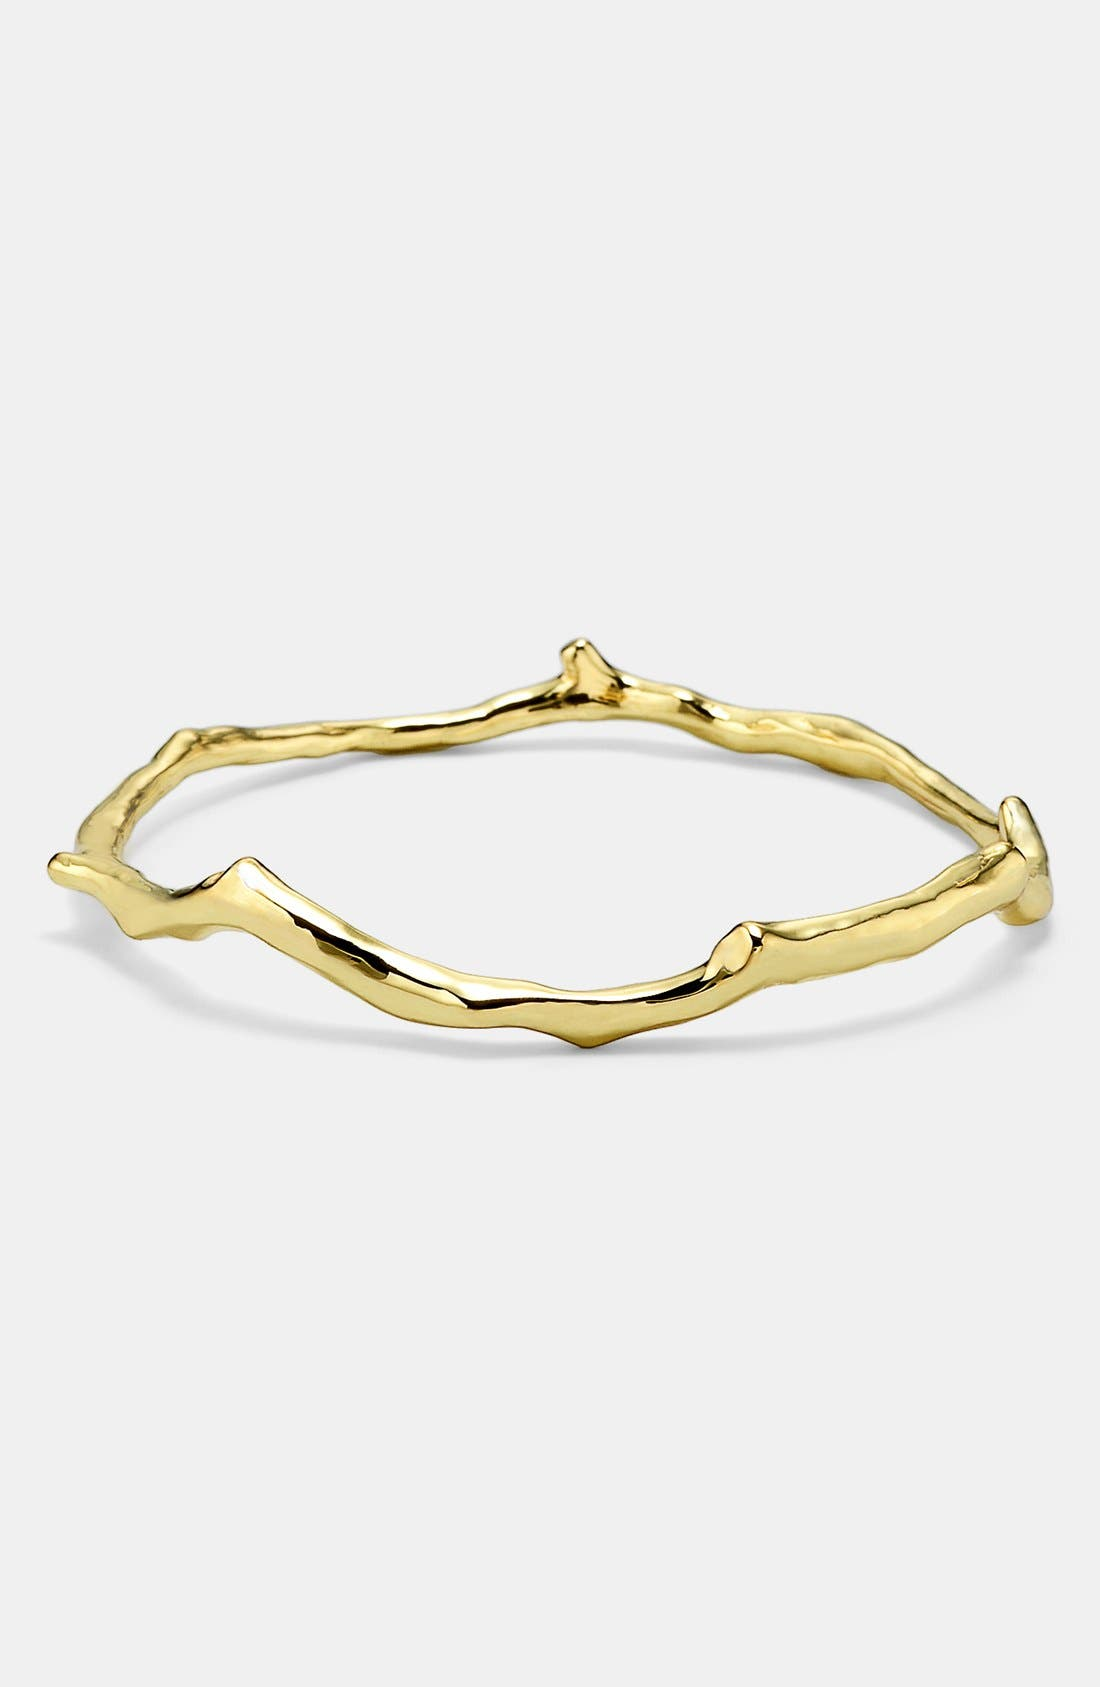 Main Image - Ippolita 'Glamazon - Reef' 18k Gold Bangle